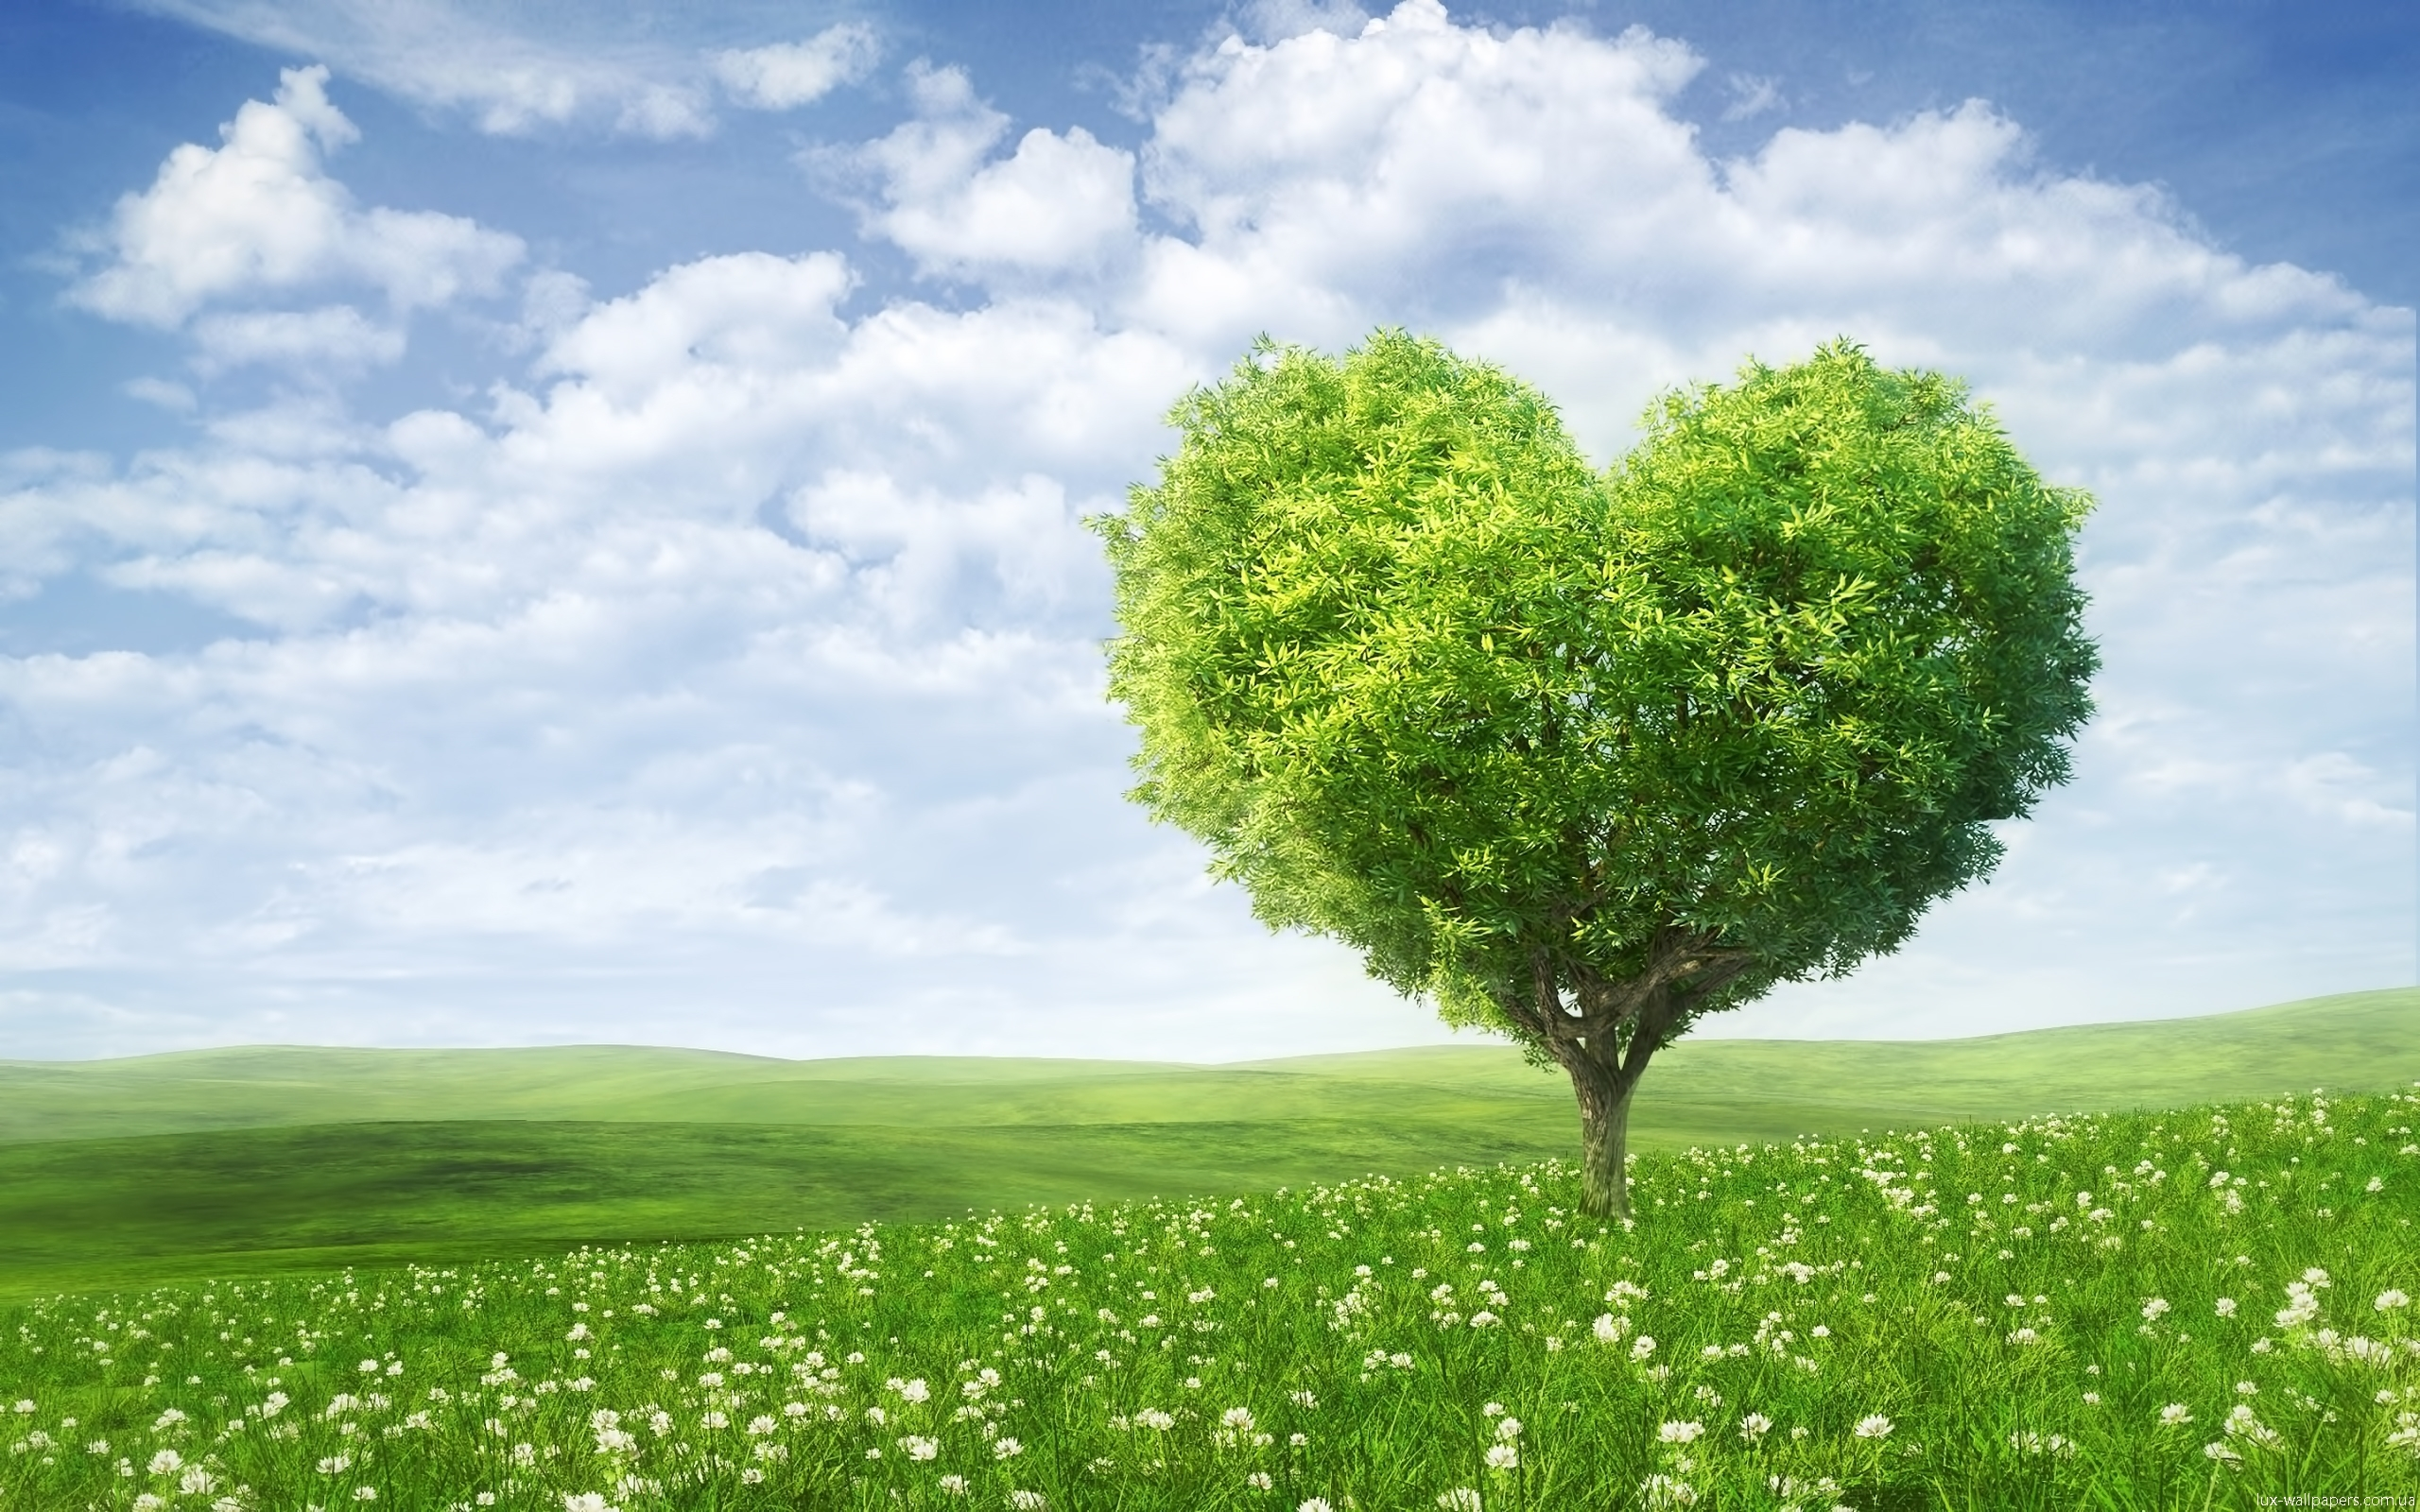 Download mobile wallpaper Love, Sky, Clouds, Hearts, Valentine's Day, Landscape, Plants, Fields, Trees, Holidays for free.